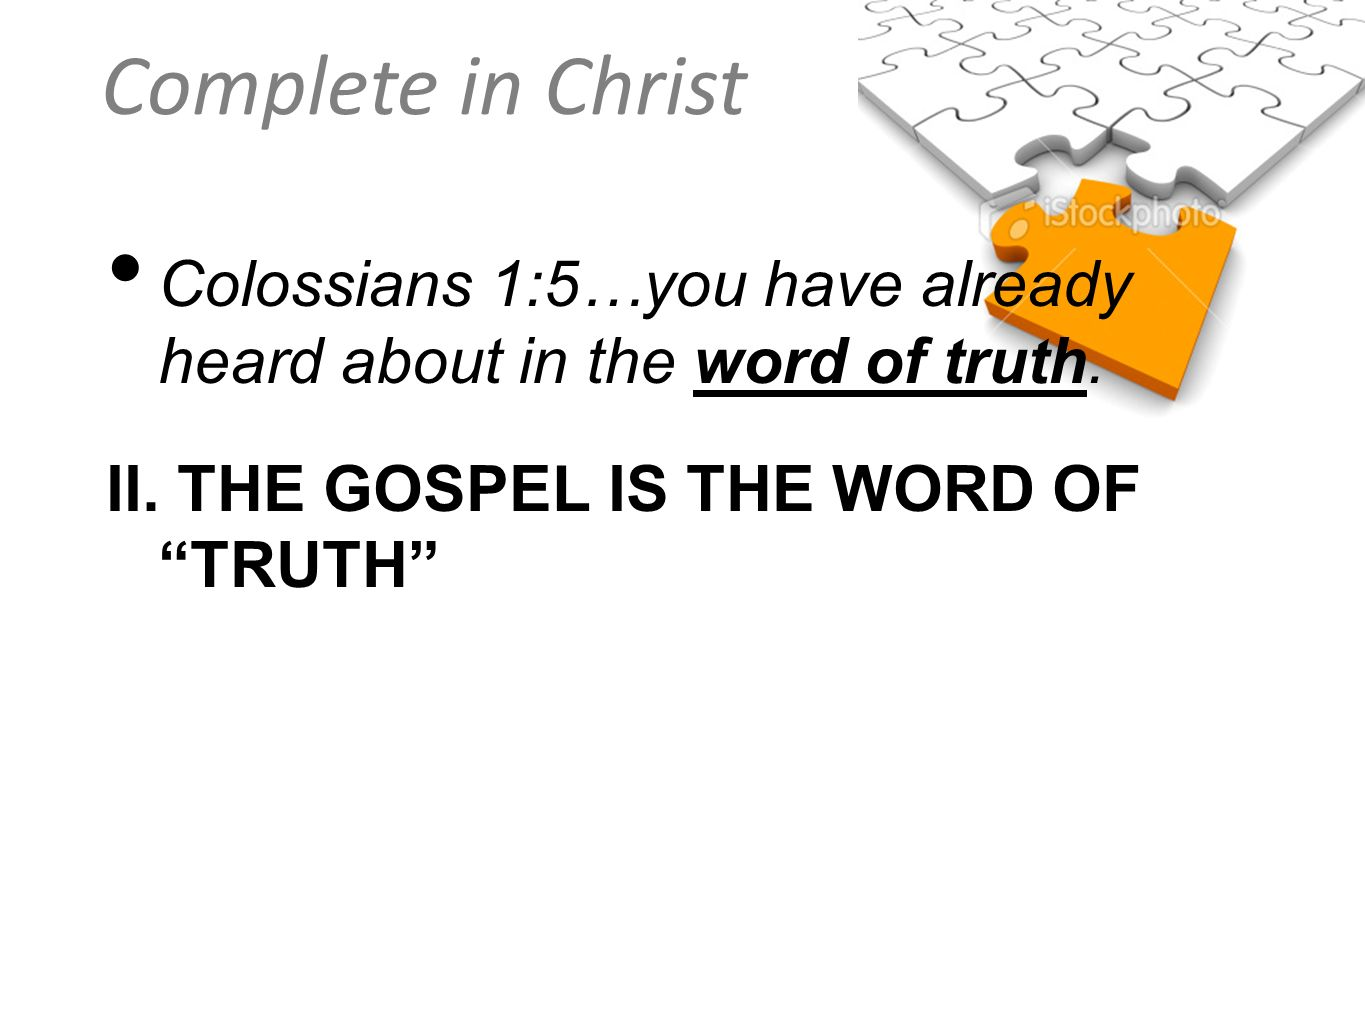 Colossians 1:5…you have already heard about in the word of truth.